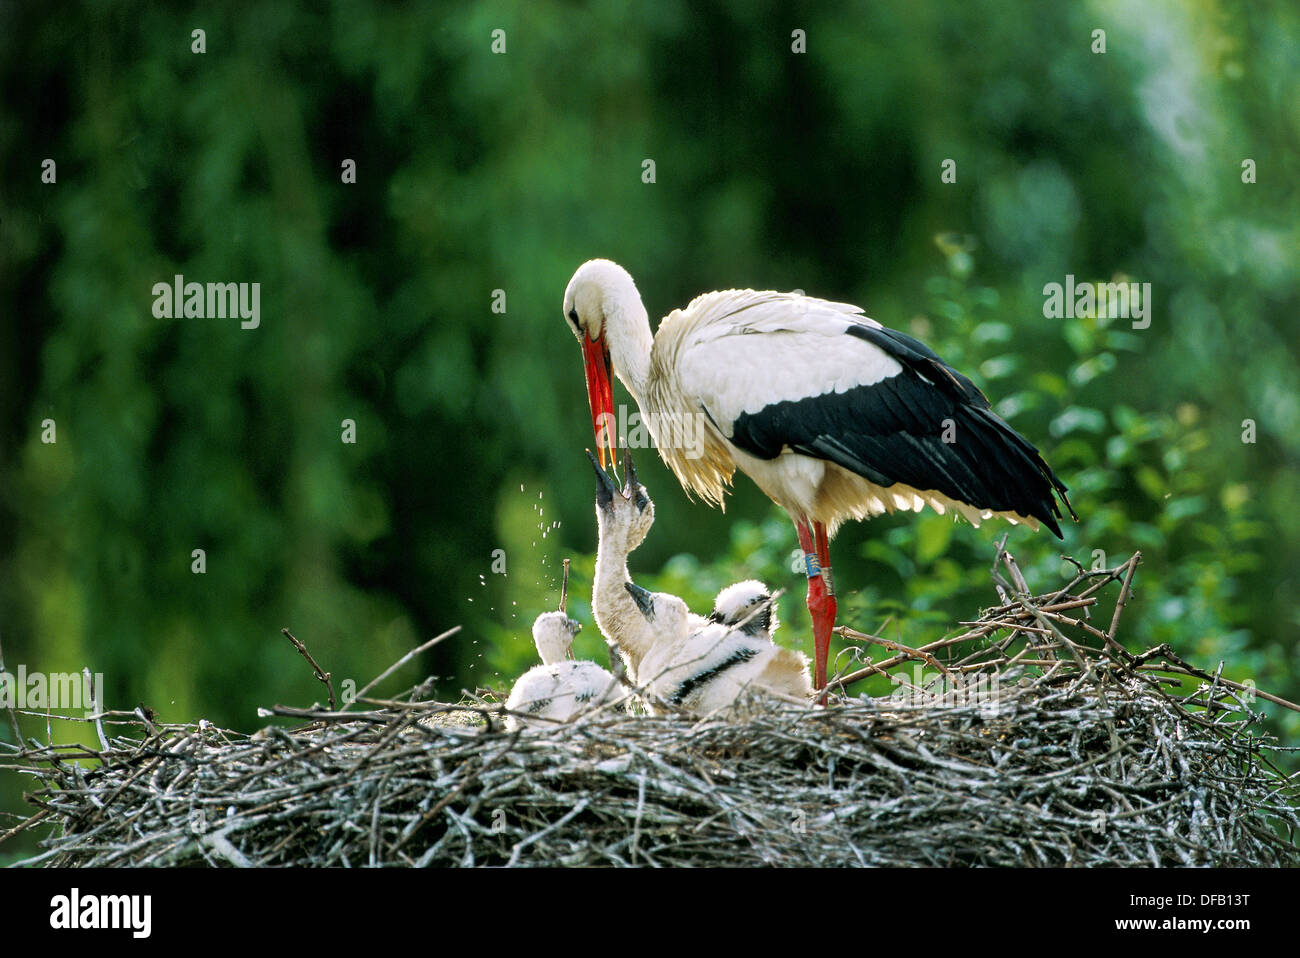 White stork regurgitating food to chicks in nest (Ciconia ciconia). Alsace - France Stock Photo